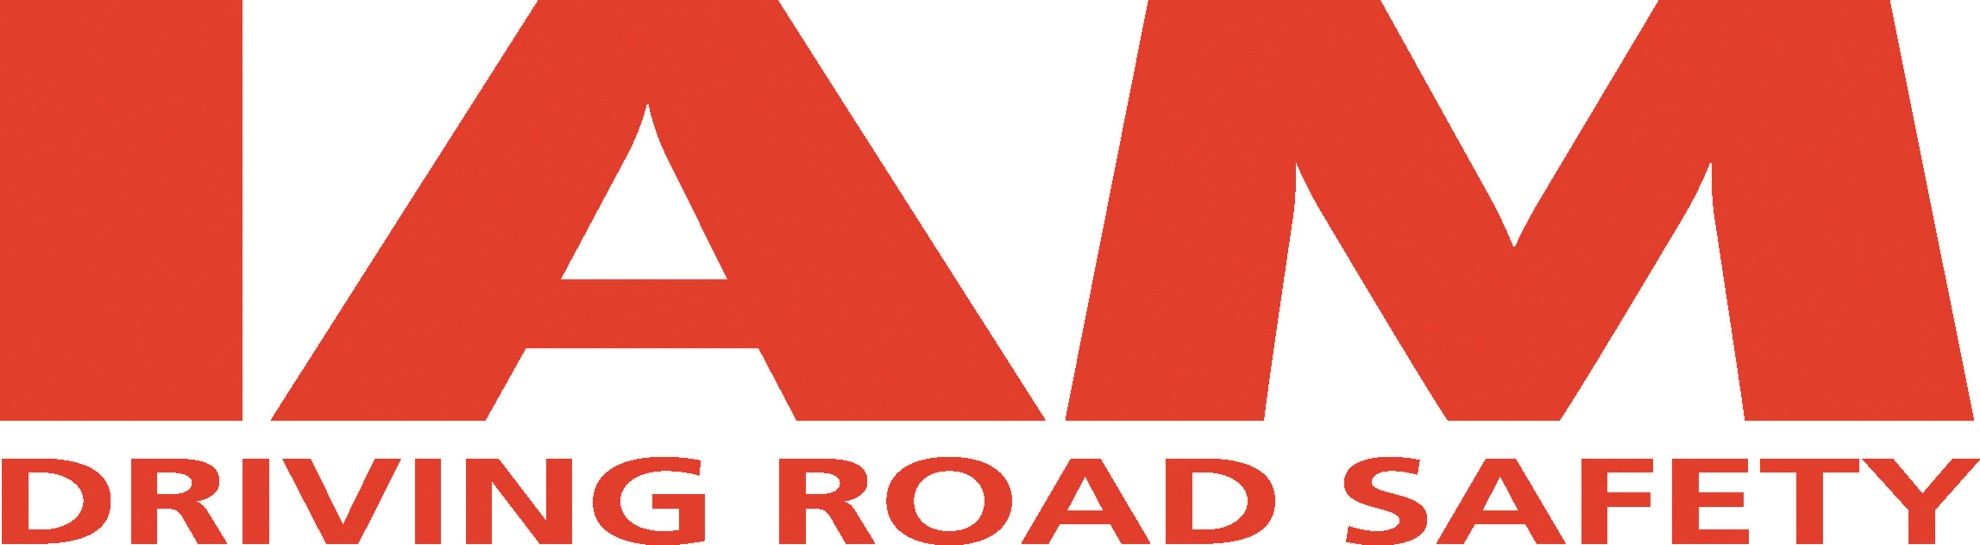 IAM-Driving-Road-Safety